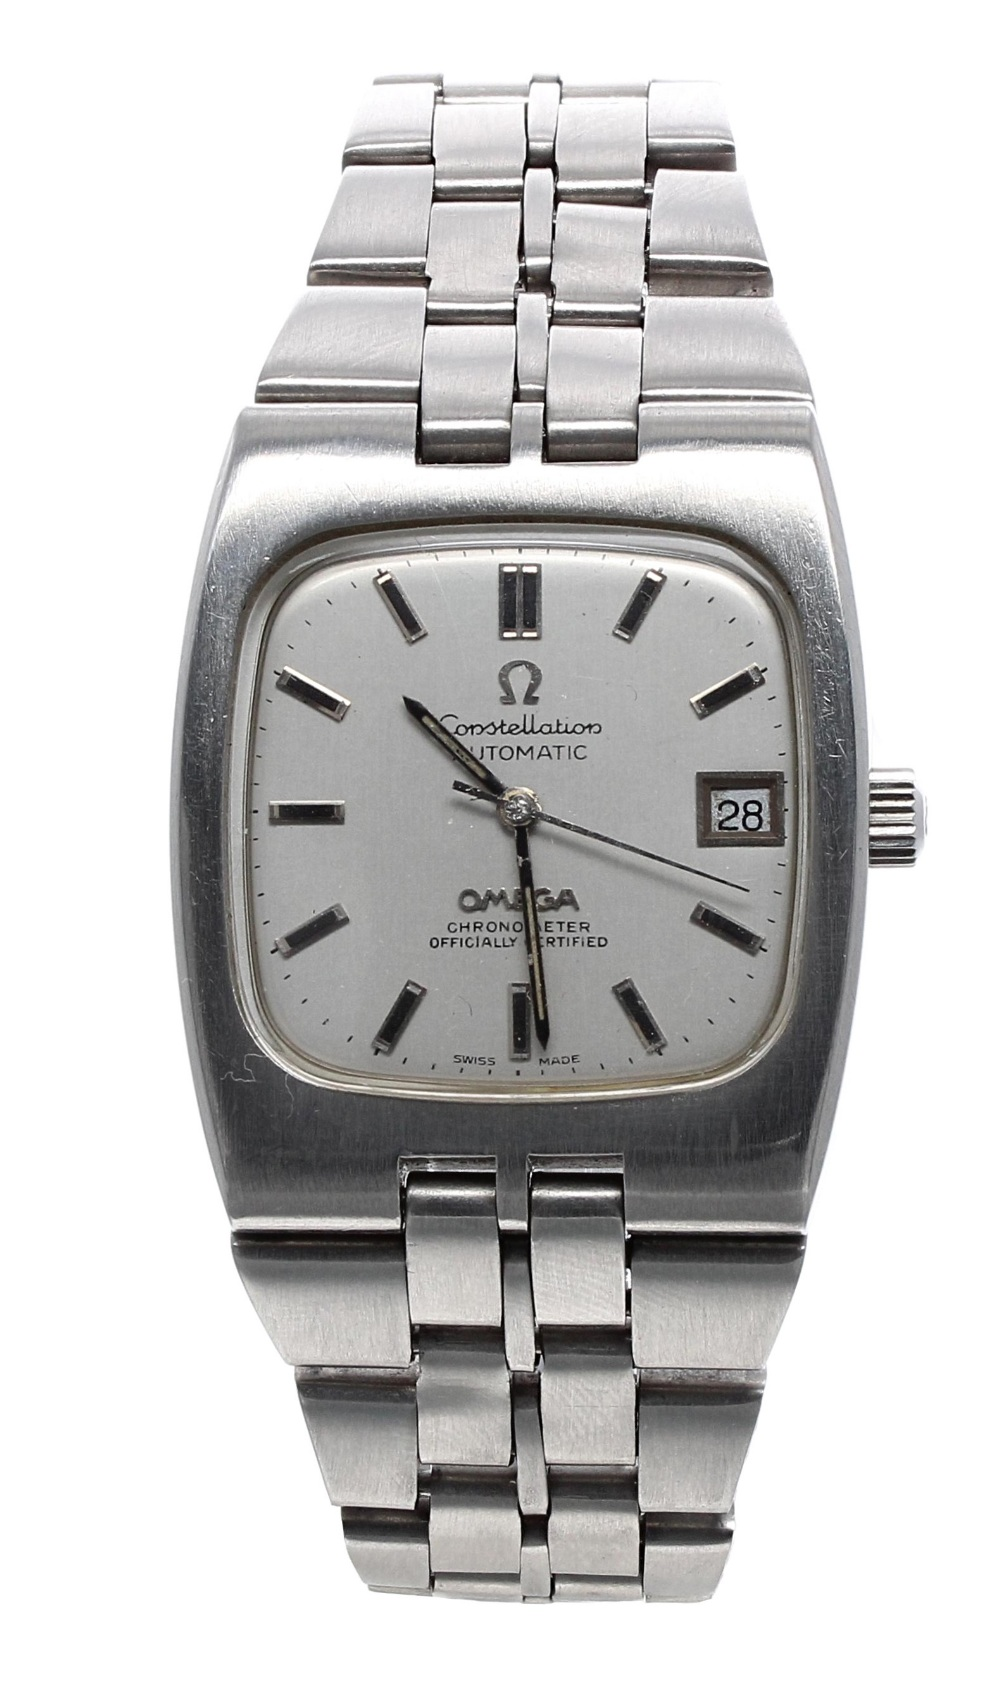 Lot 36 - Omega Constellation Chronometer automatic stainless steel gentleman's bracelet watch, circa 1970s,